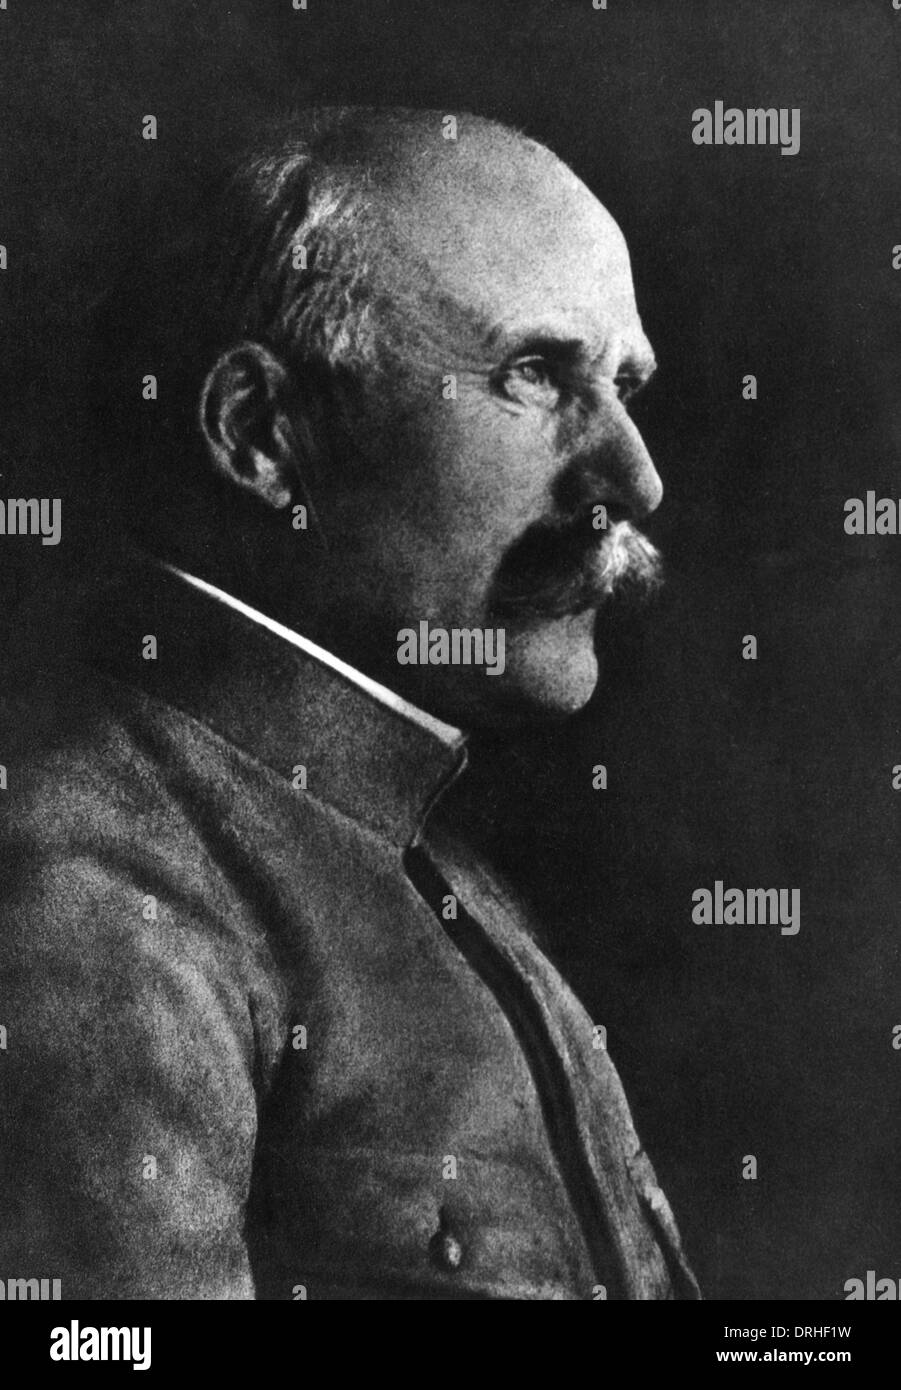 General Petain, French army officer - Stock Image